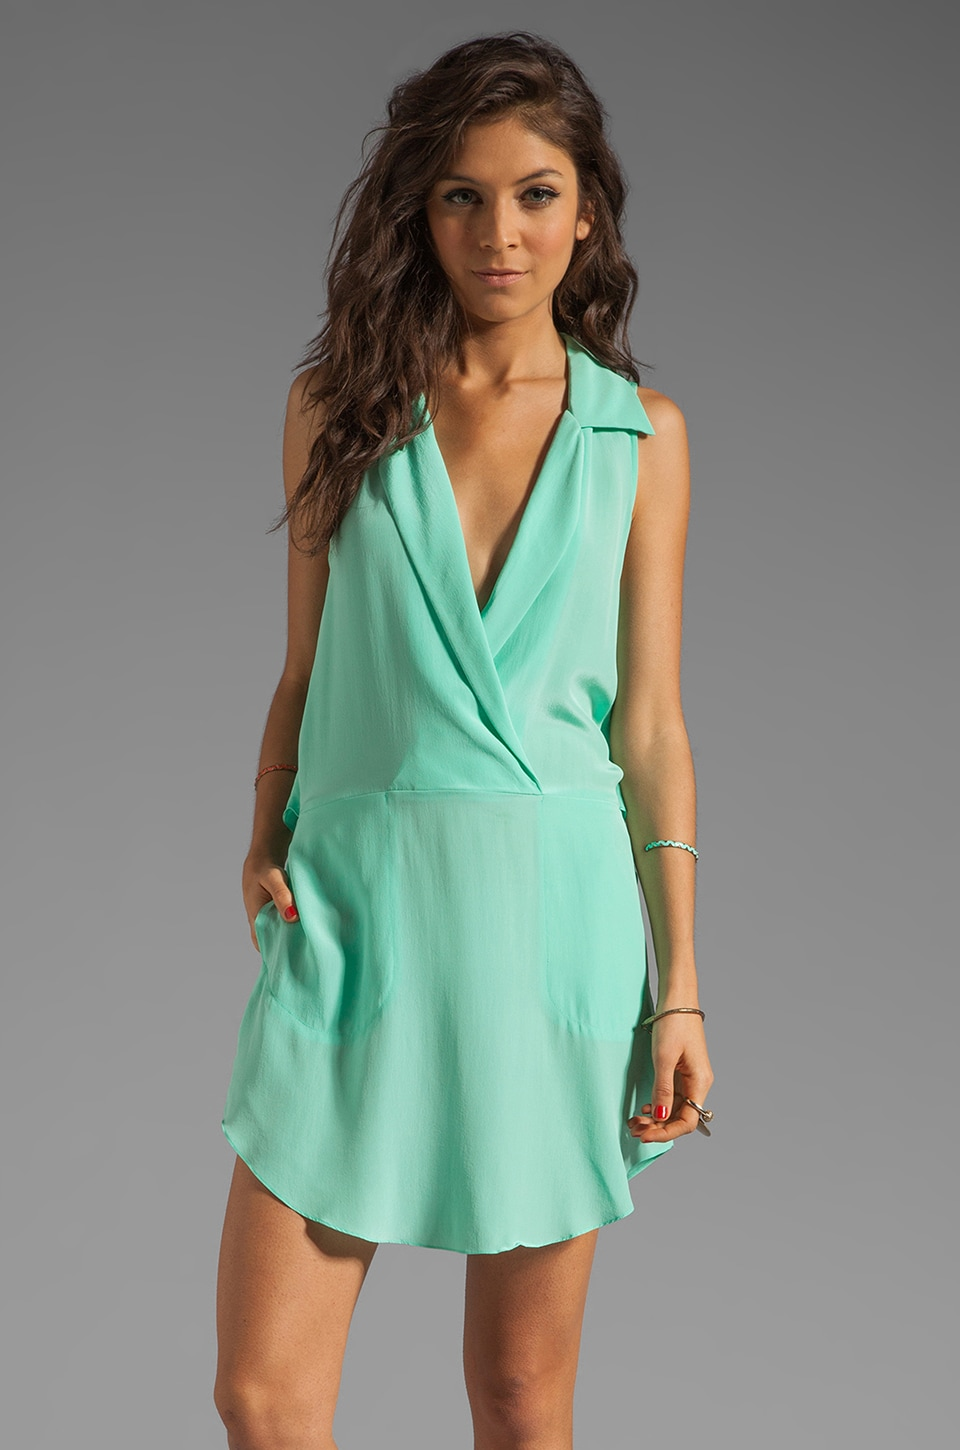 Tracy Reese RUNWAY Soft Solids Surplice Shirtdress in Beach Glass